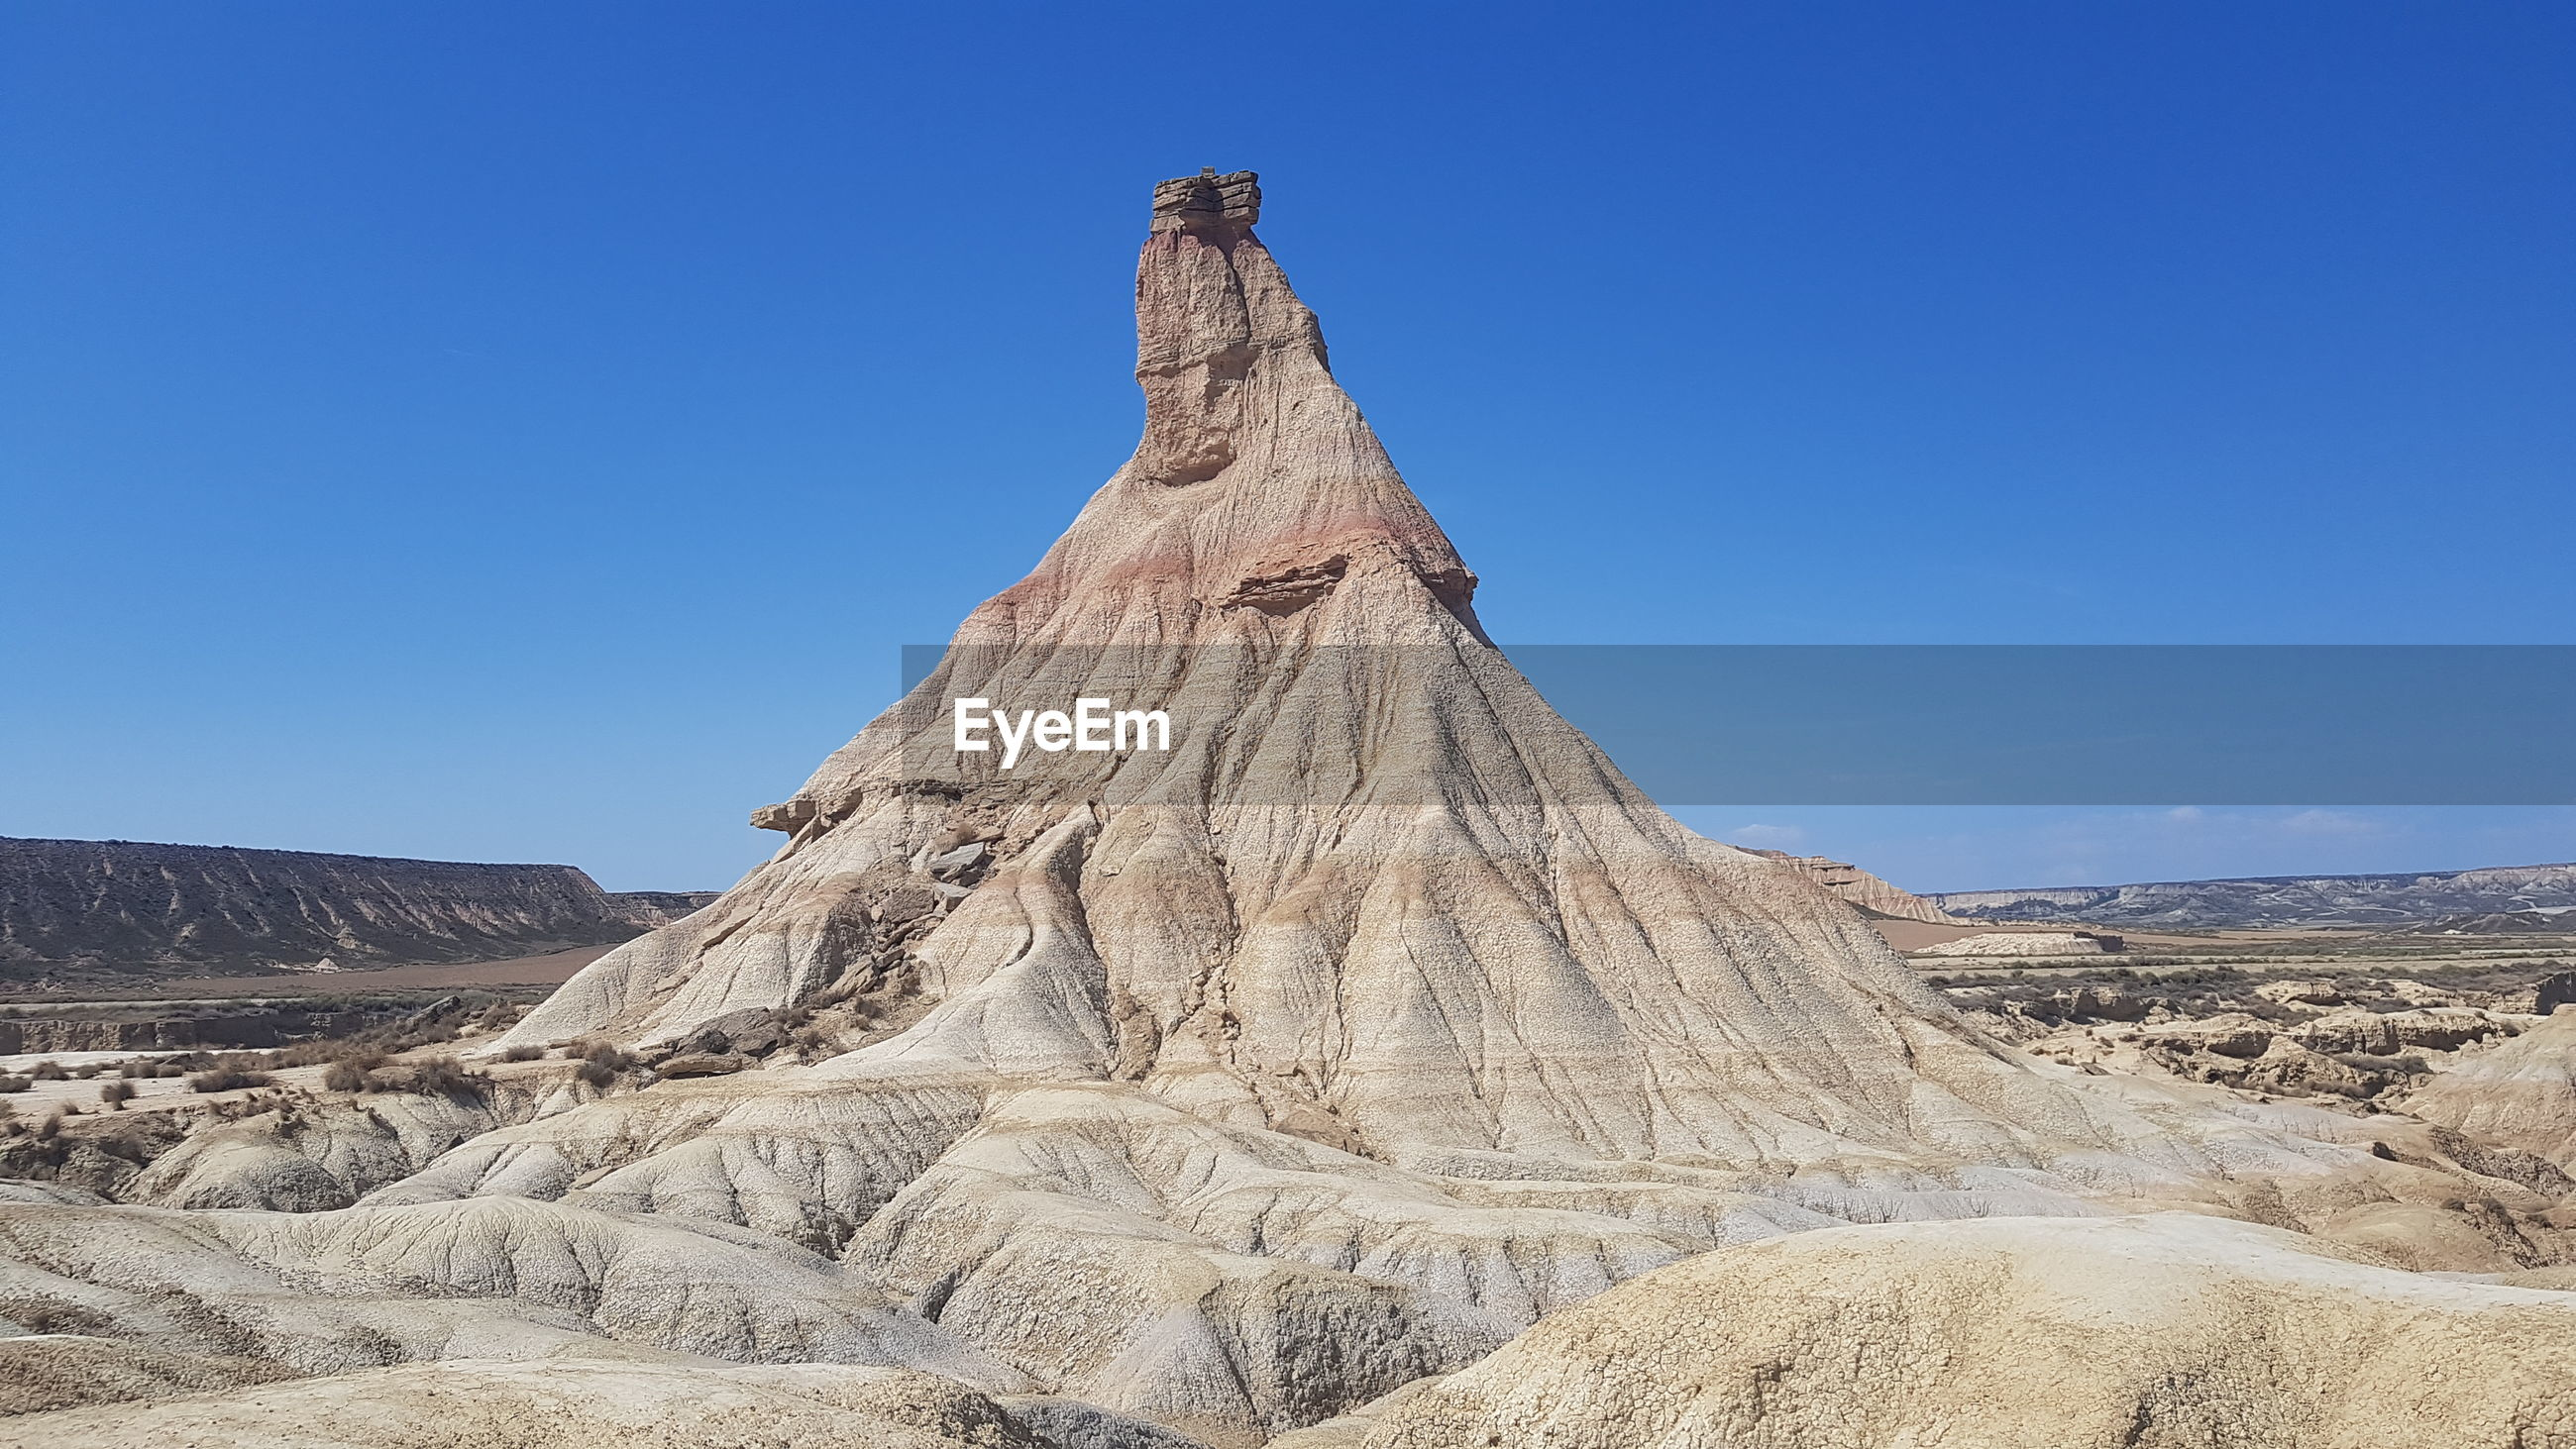 Rock formations in a desert